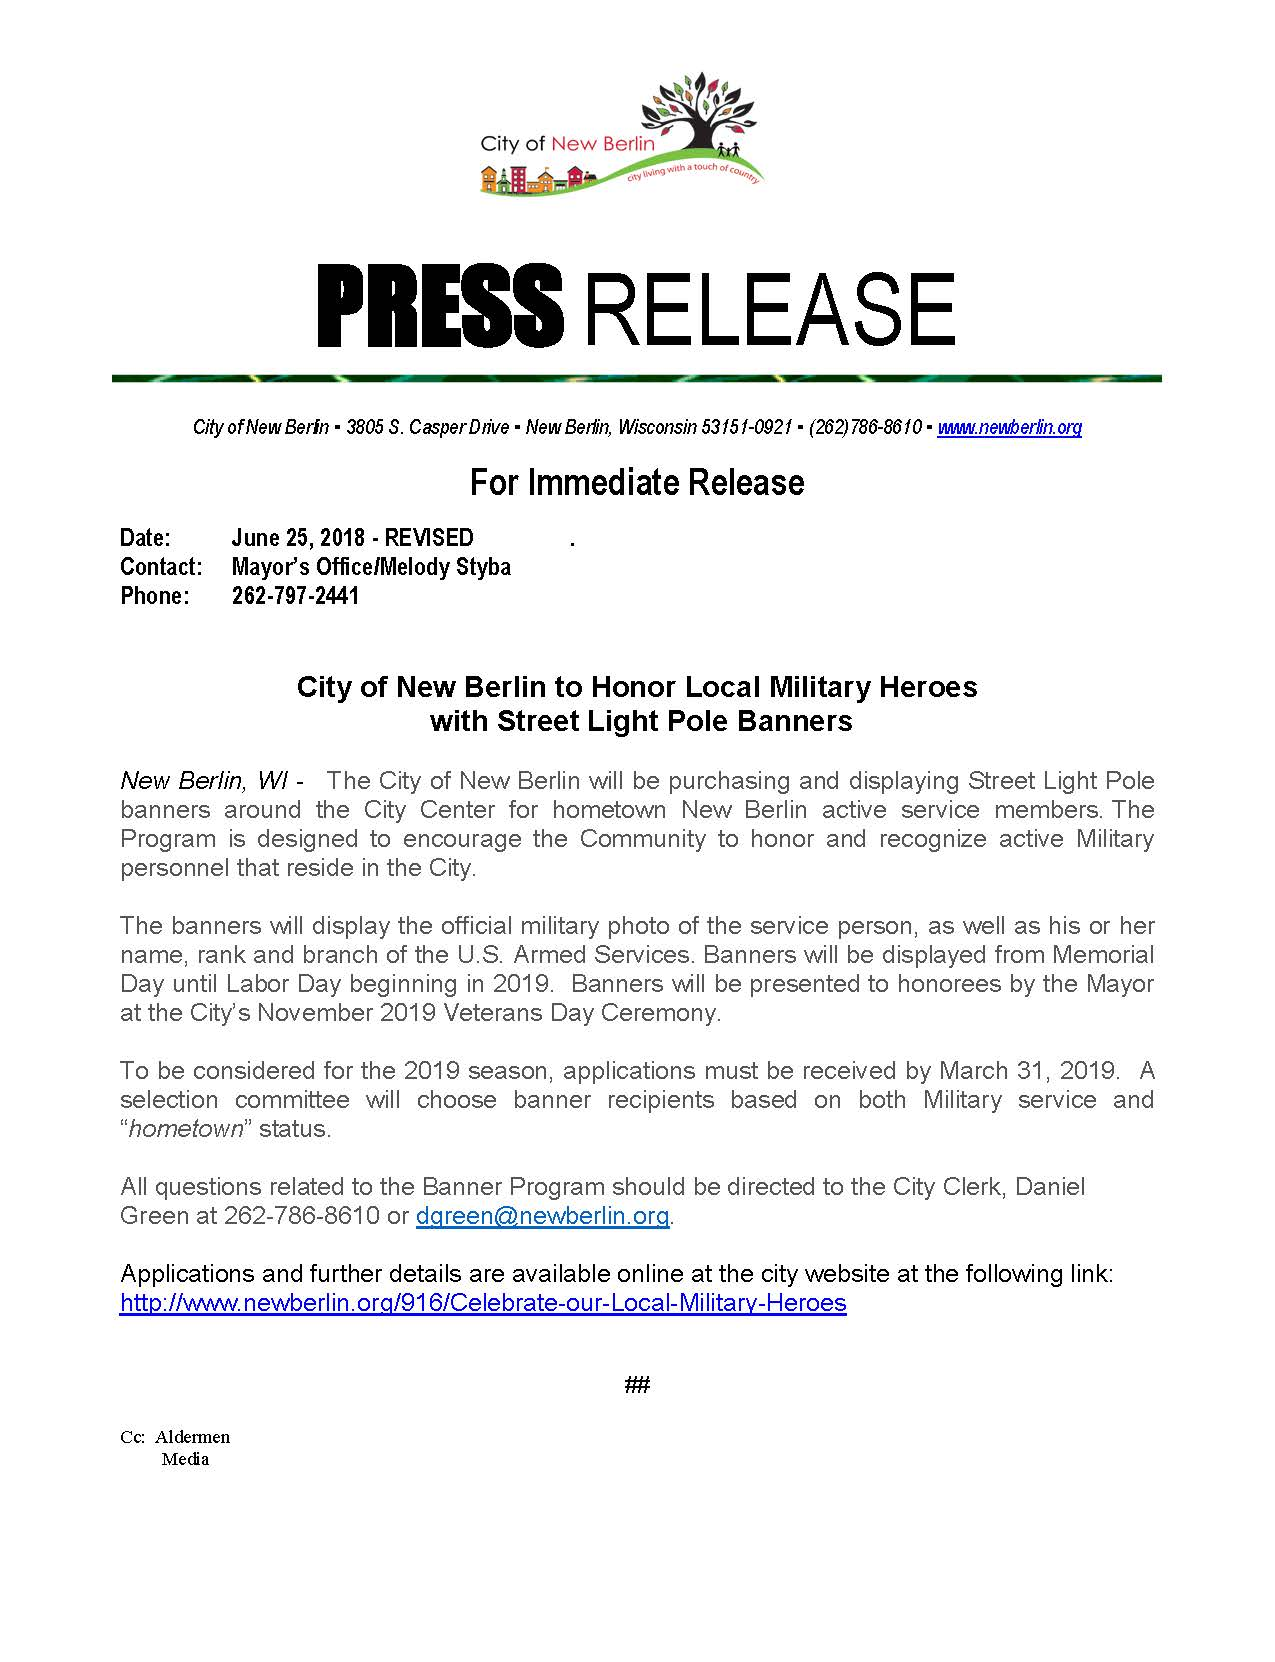 Press-Release-Military Heroes